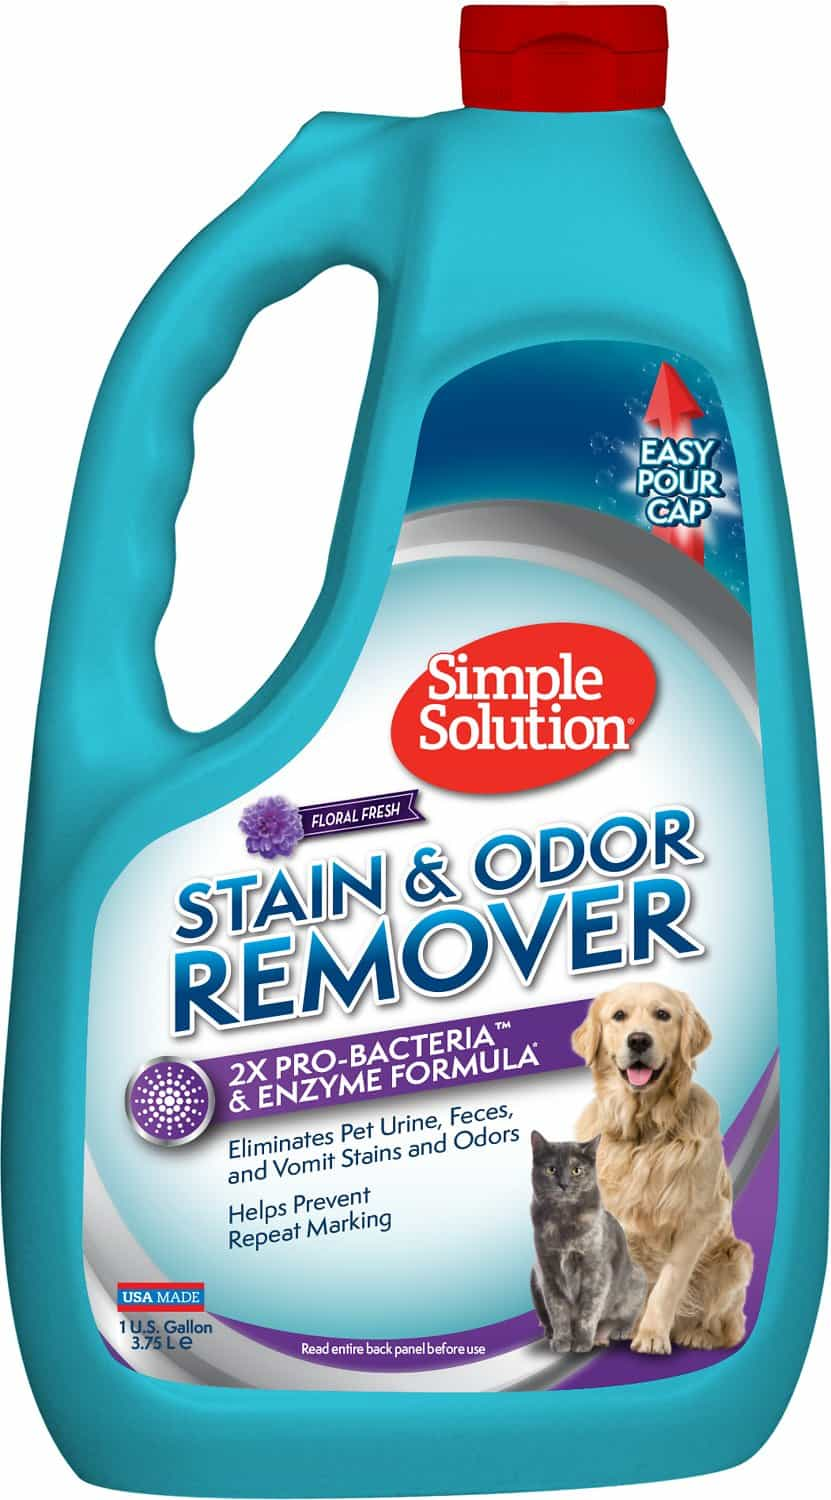 The Best Cat Urine Remover To Stop The Smell in Its Tracks 7